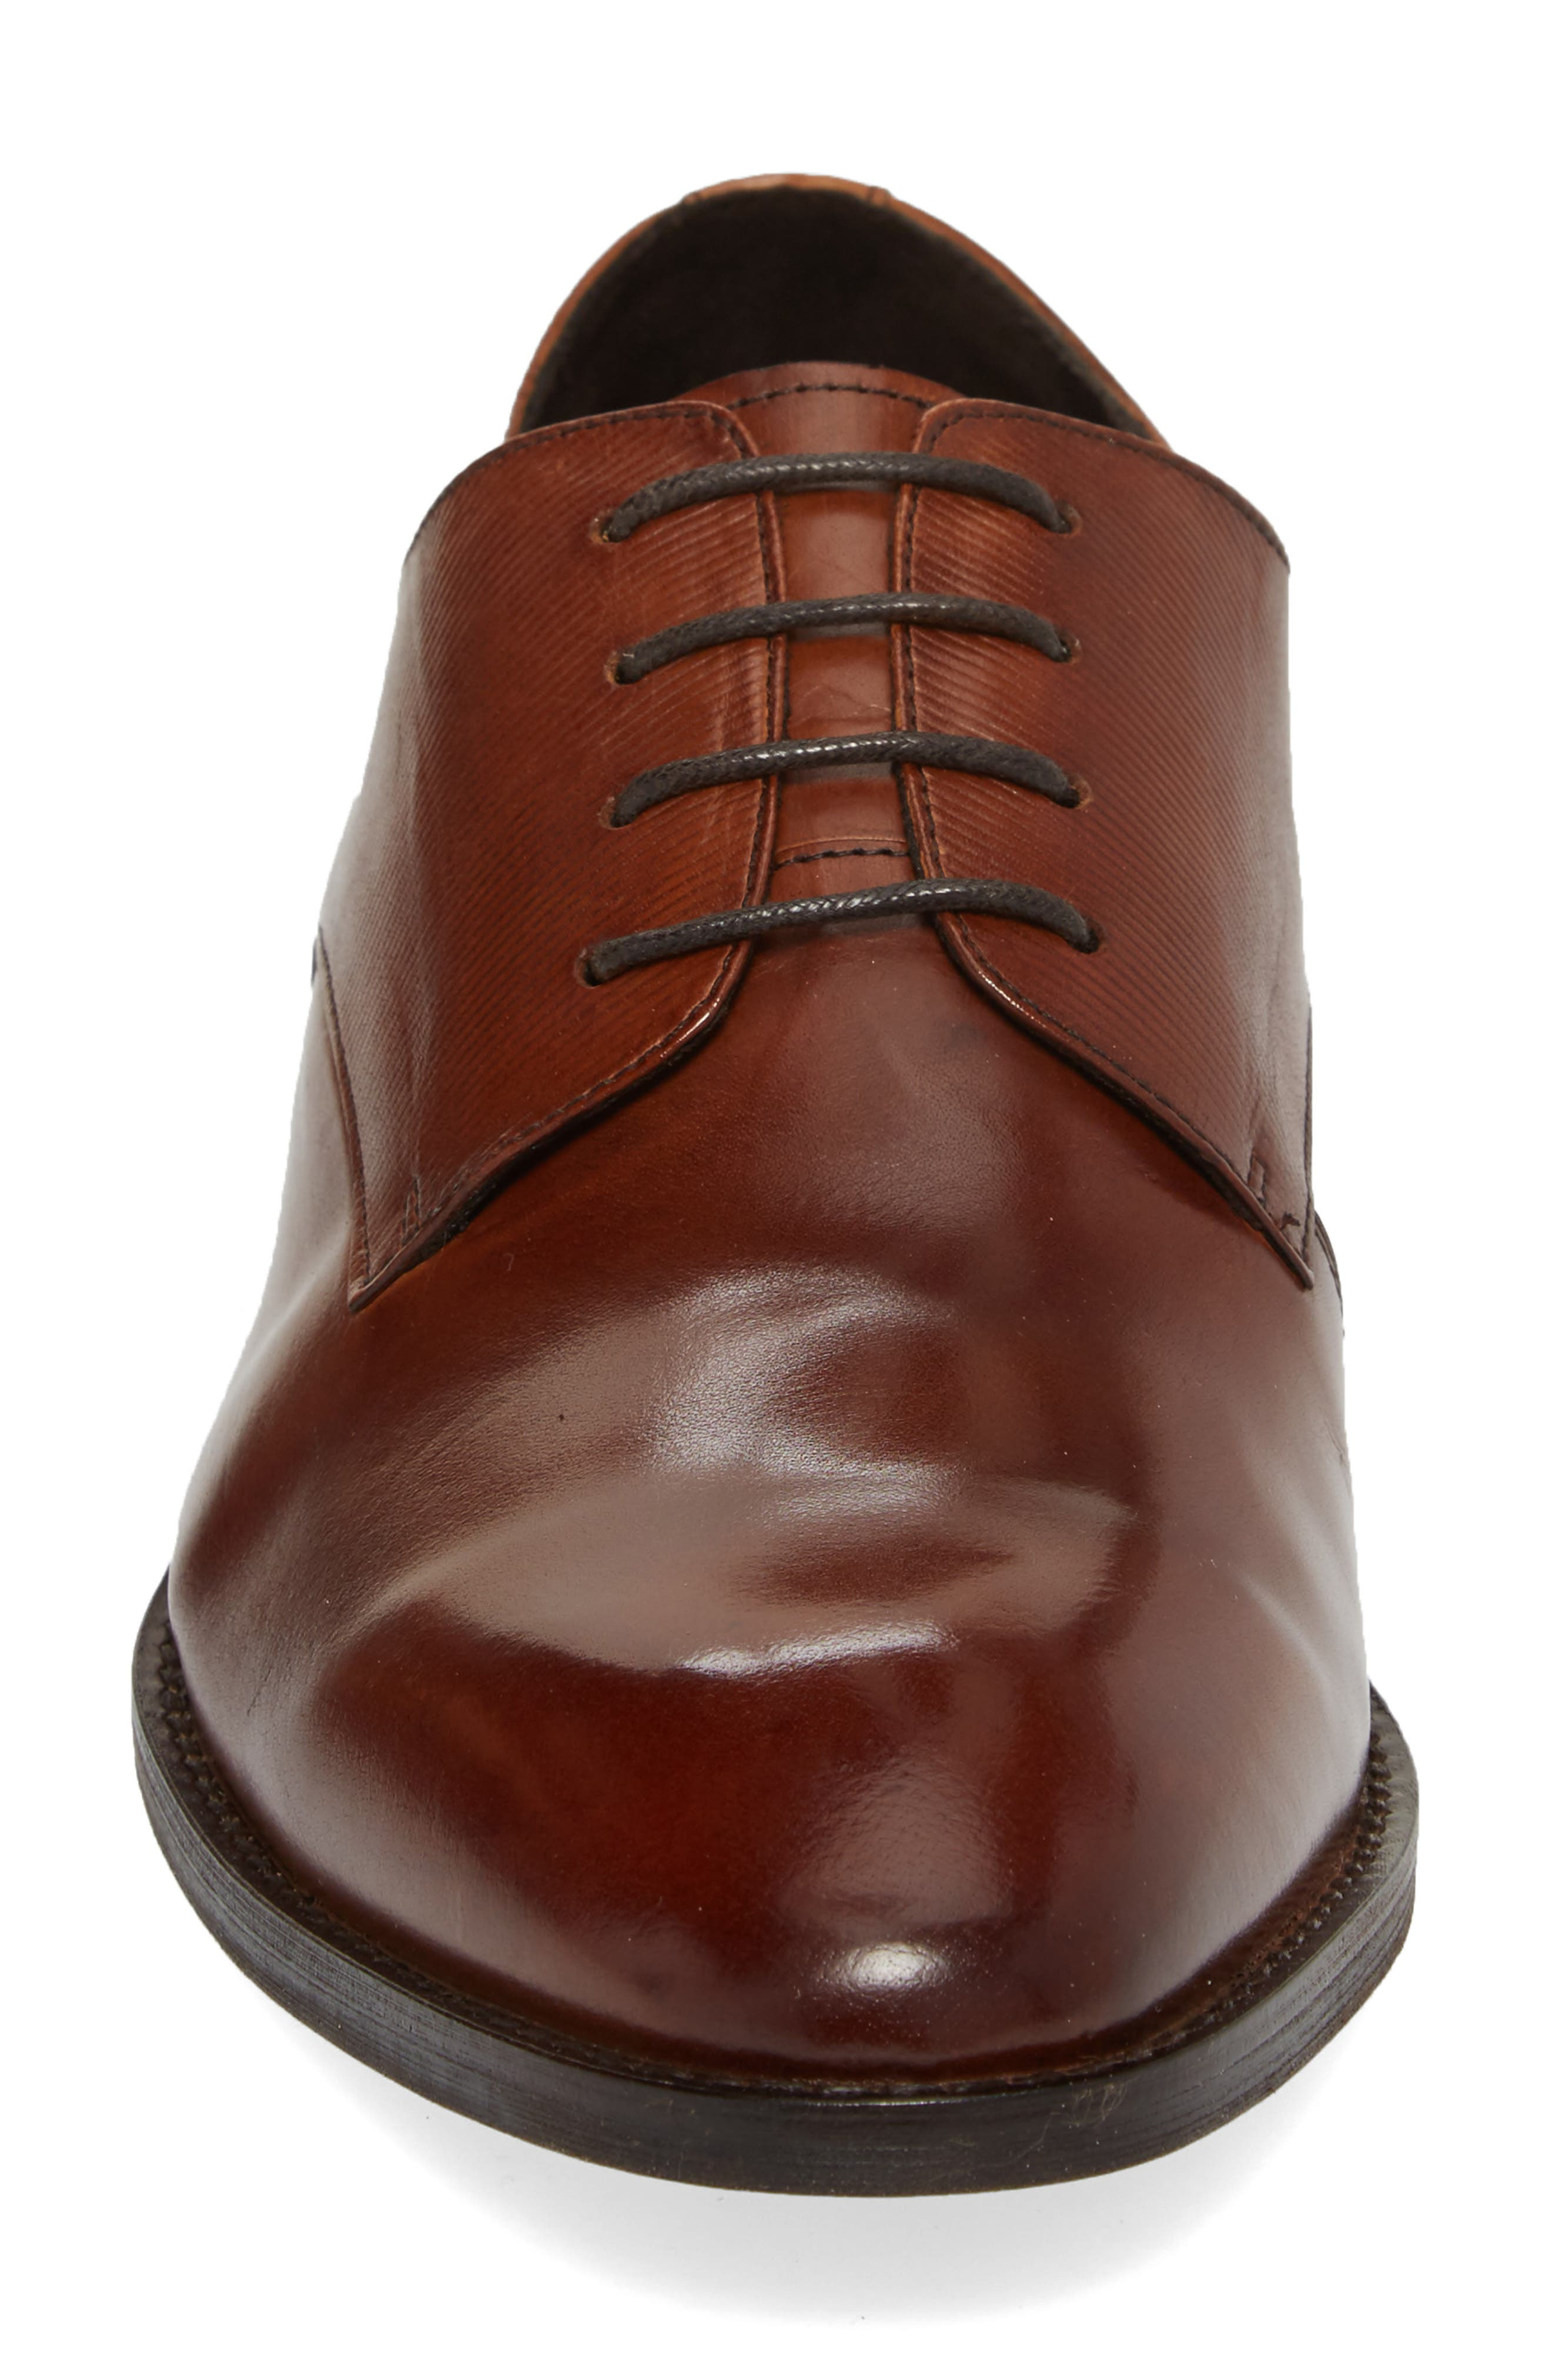 KENNETH COLE NEW YORK, Courage Plain Toe Derby, Alternate thumbnail 4, color, 200